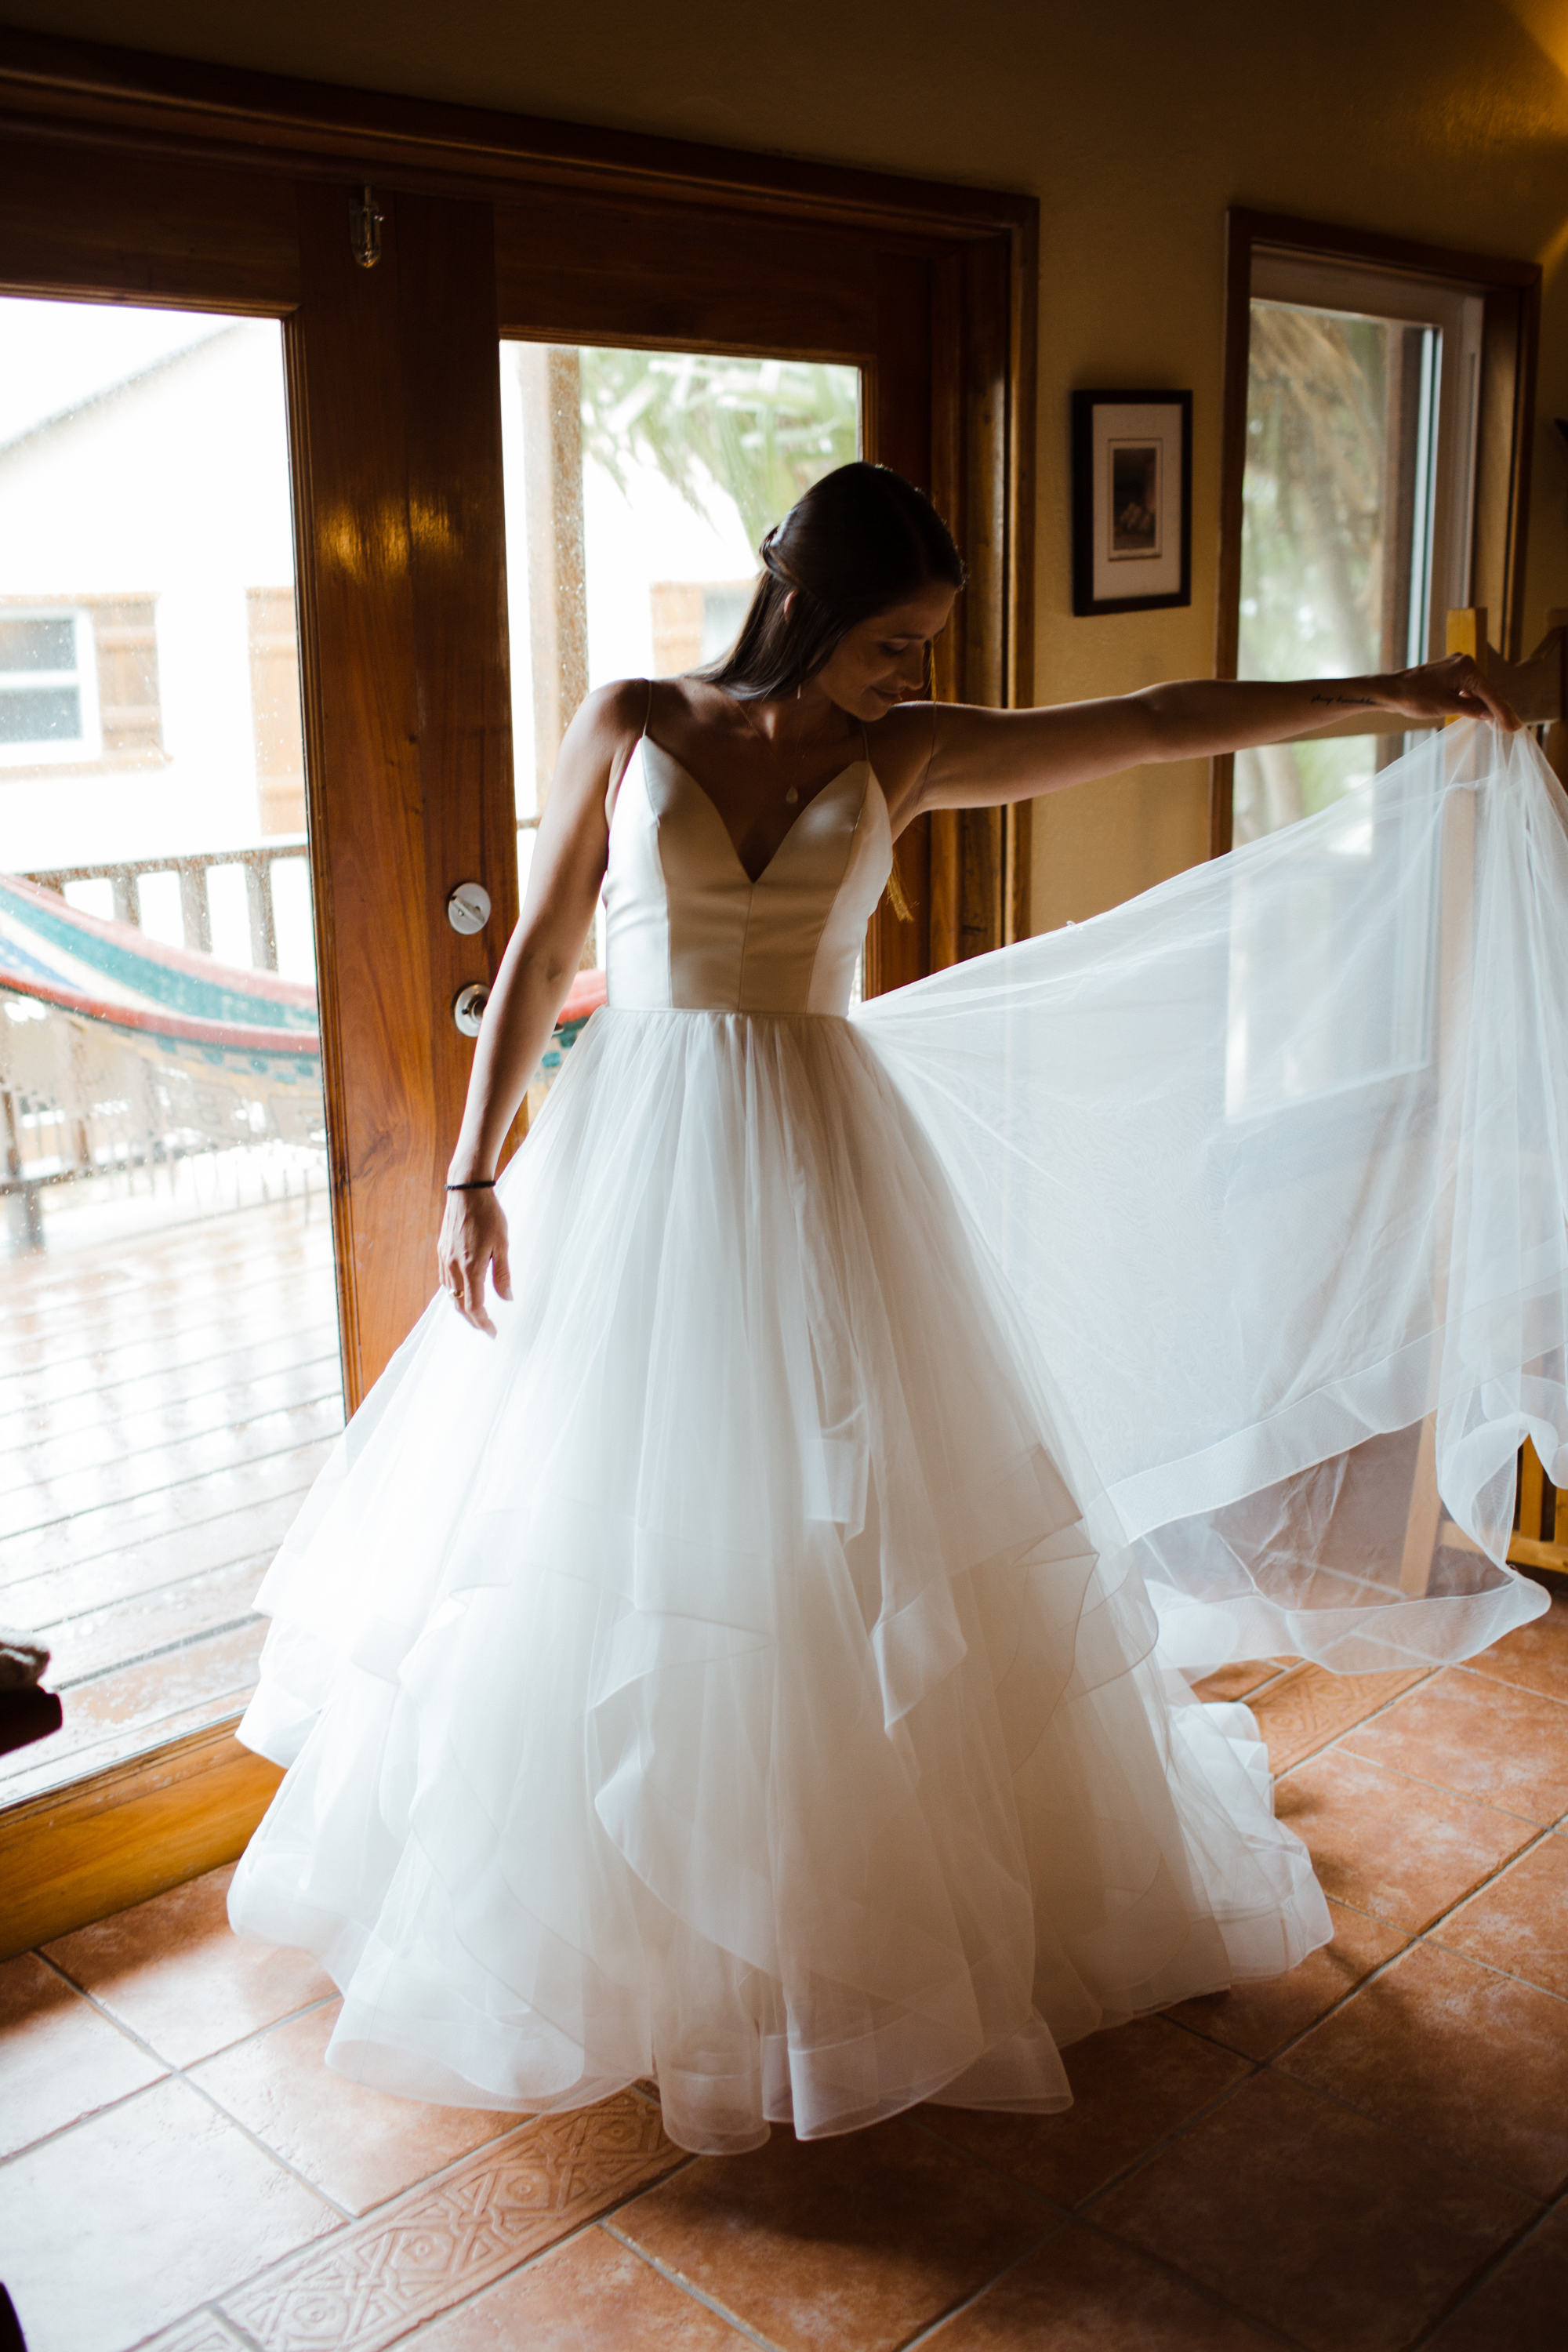 san-pescador-belize-wedding-christinemariephoto-j-k-22.jpg